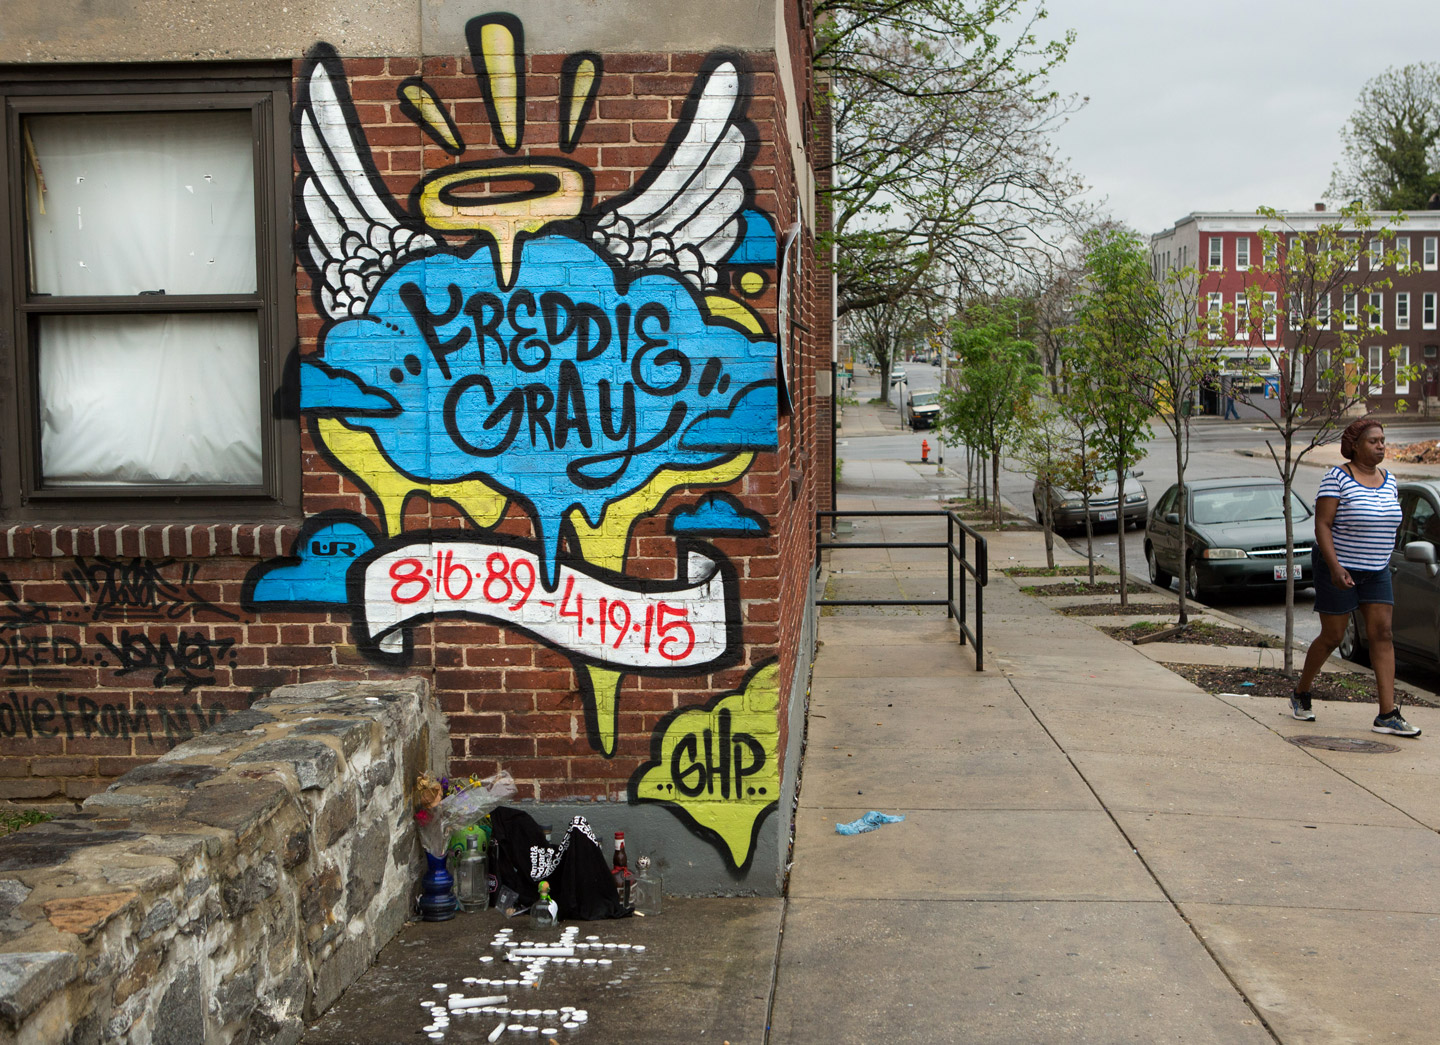 A memorial to Freddie Gray, who died while in police custody just over one year ago, stands at the spot where he was picked up by police in Baltimore, Maryland, April 23, 2016.  (photo by Allison Shelley)